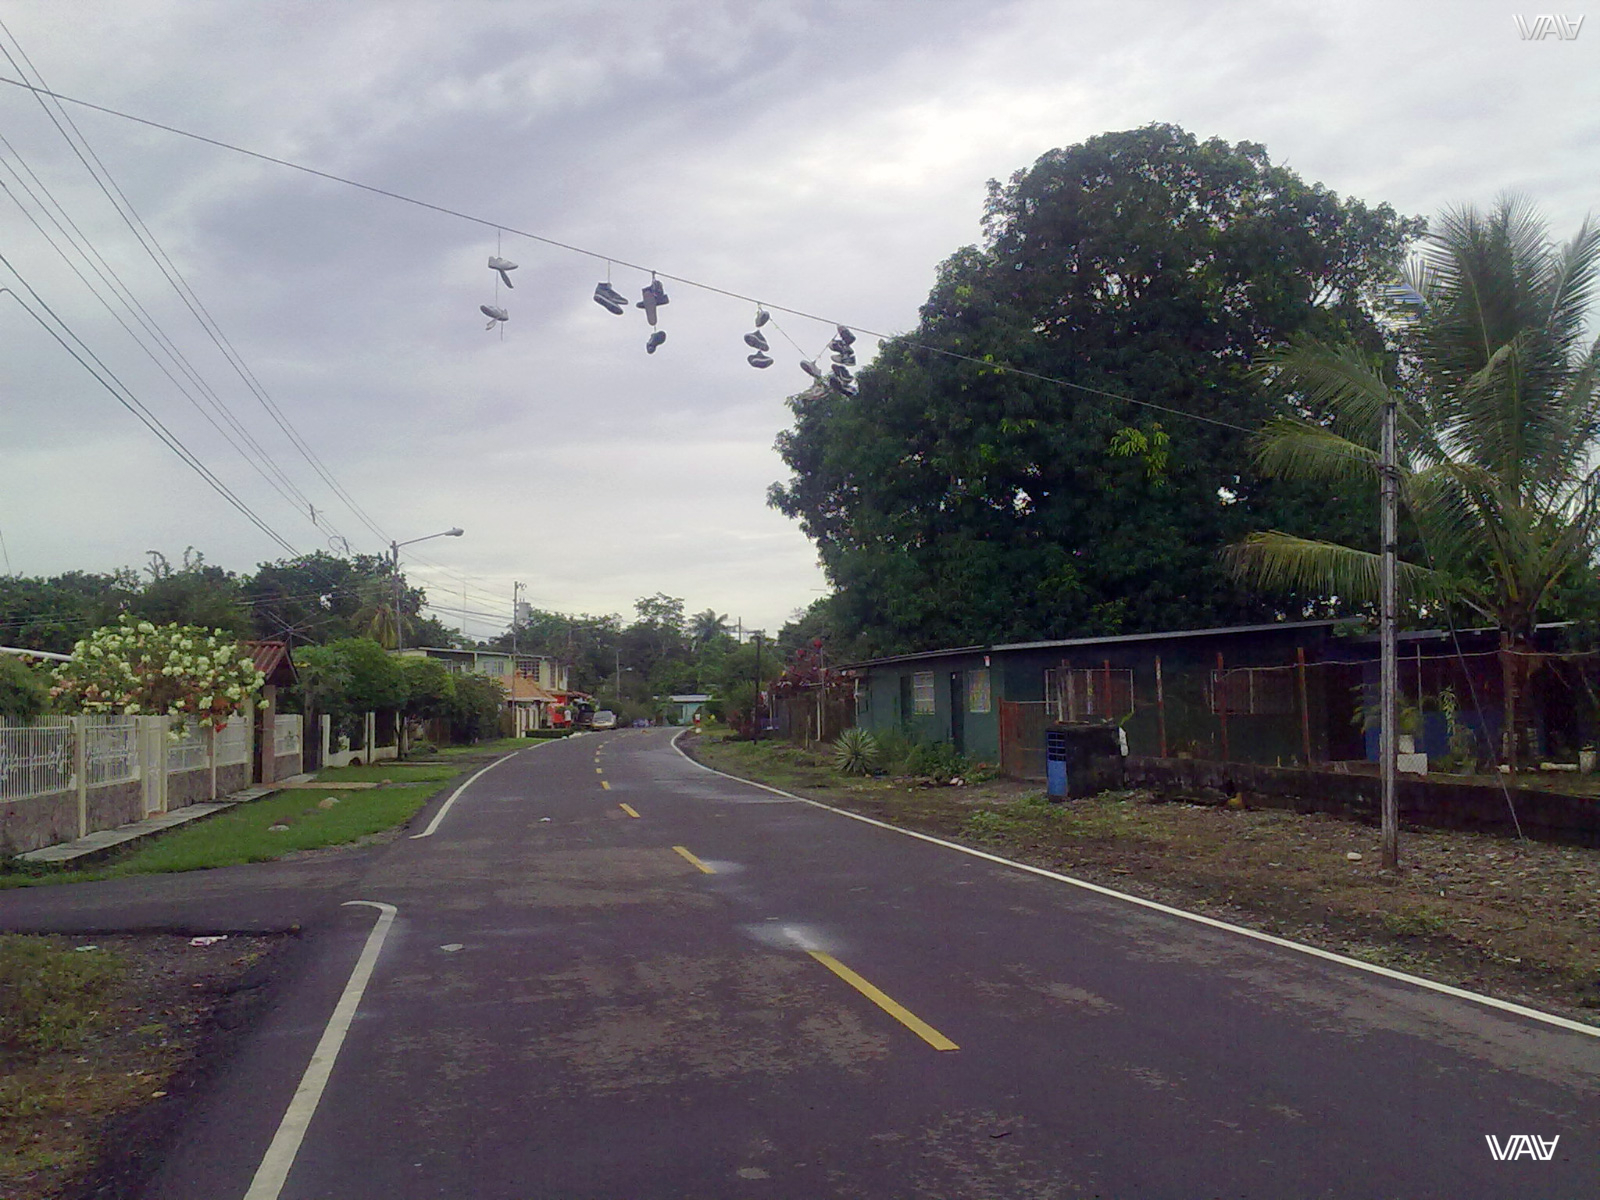 I have never seen sneakers on wires! Till now. David, Panama